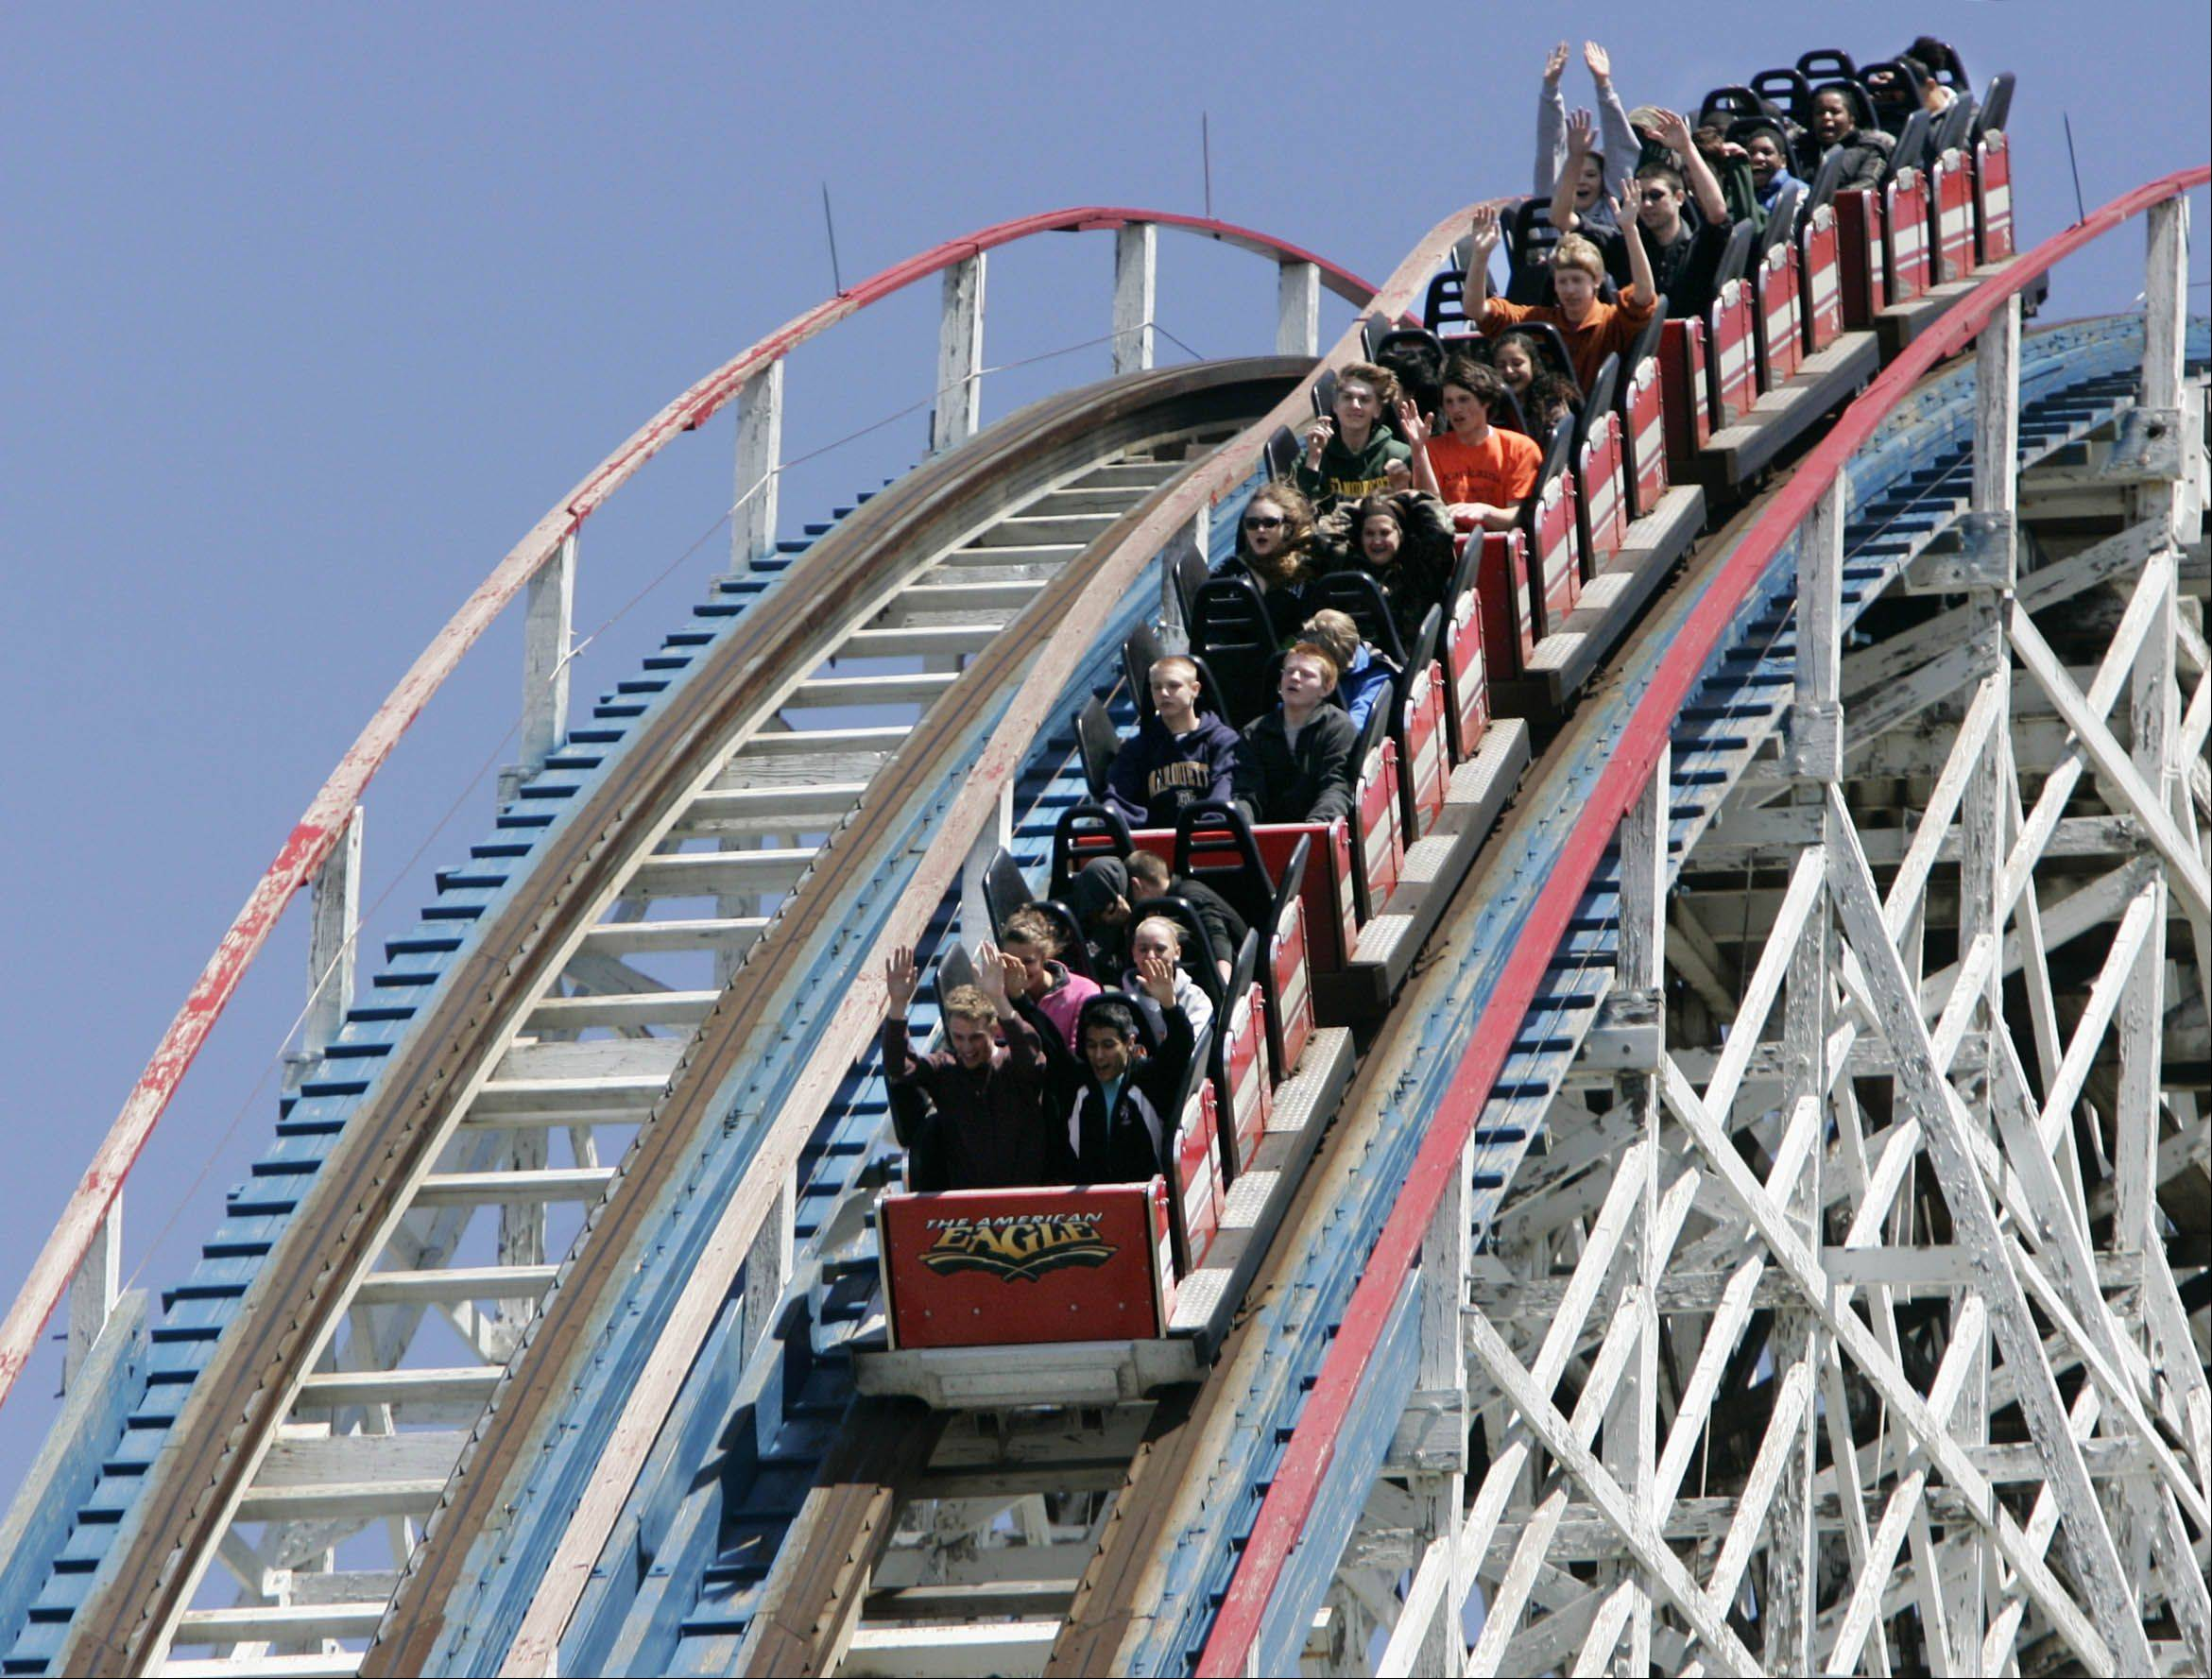 Coaster enthusiasts ride the American Eagle roller coaster at Six Flags Great America in Gurnee. Great America's opening day is Saturday, May 4.